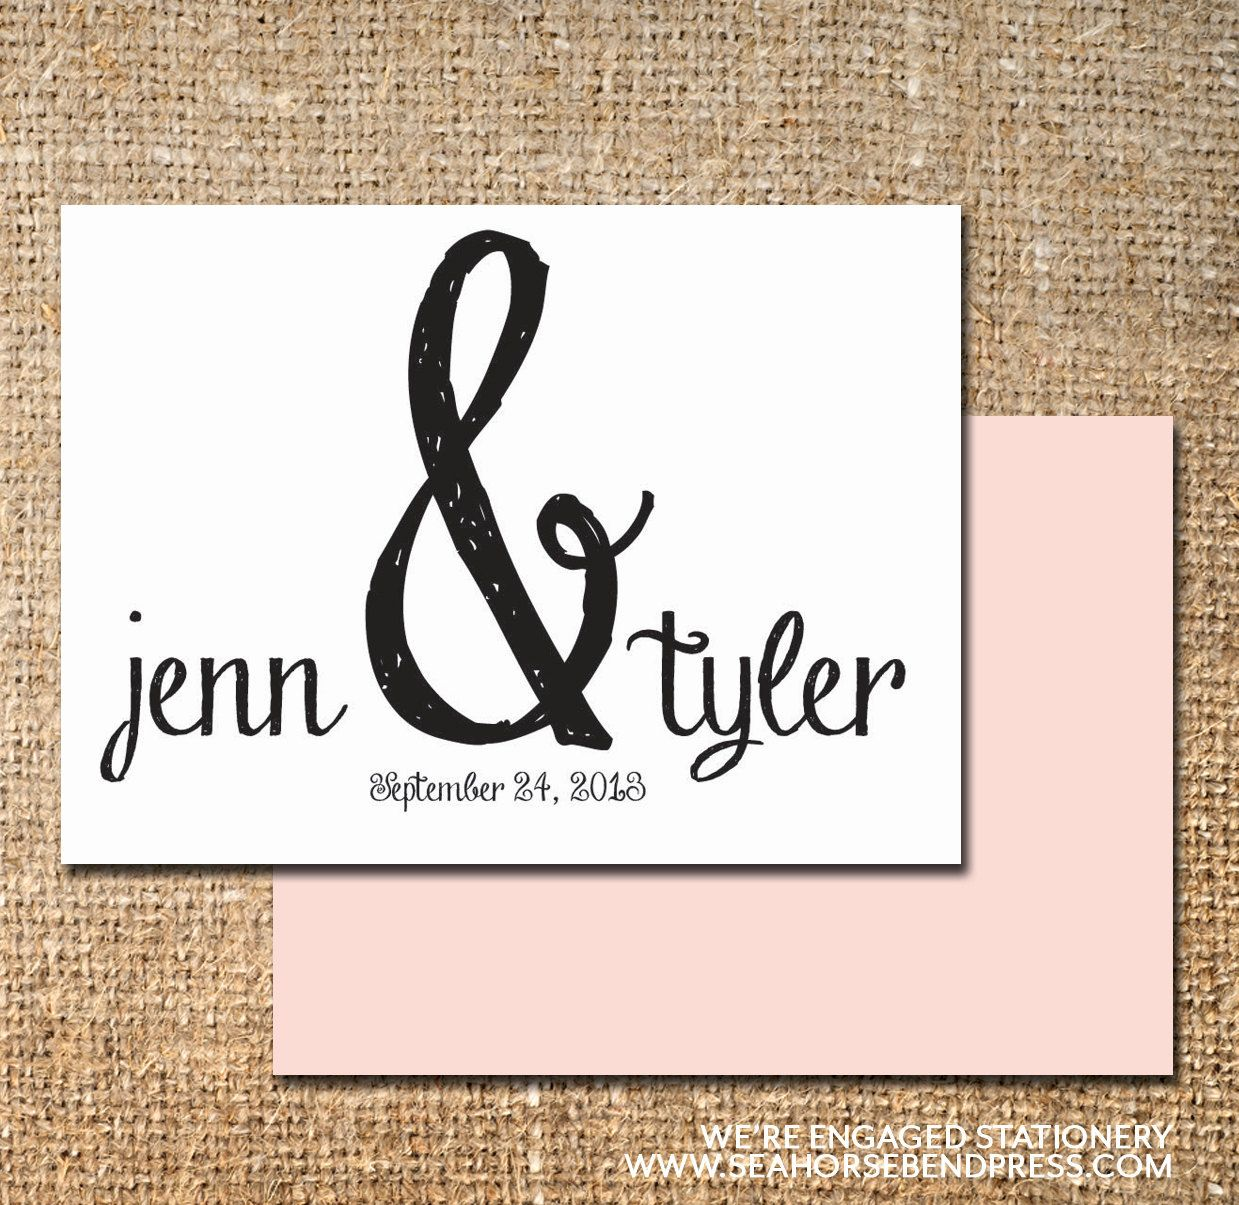 We're Engaged - Couple Stationery Note Cards. $25.00, via Etsy.